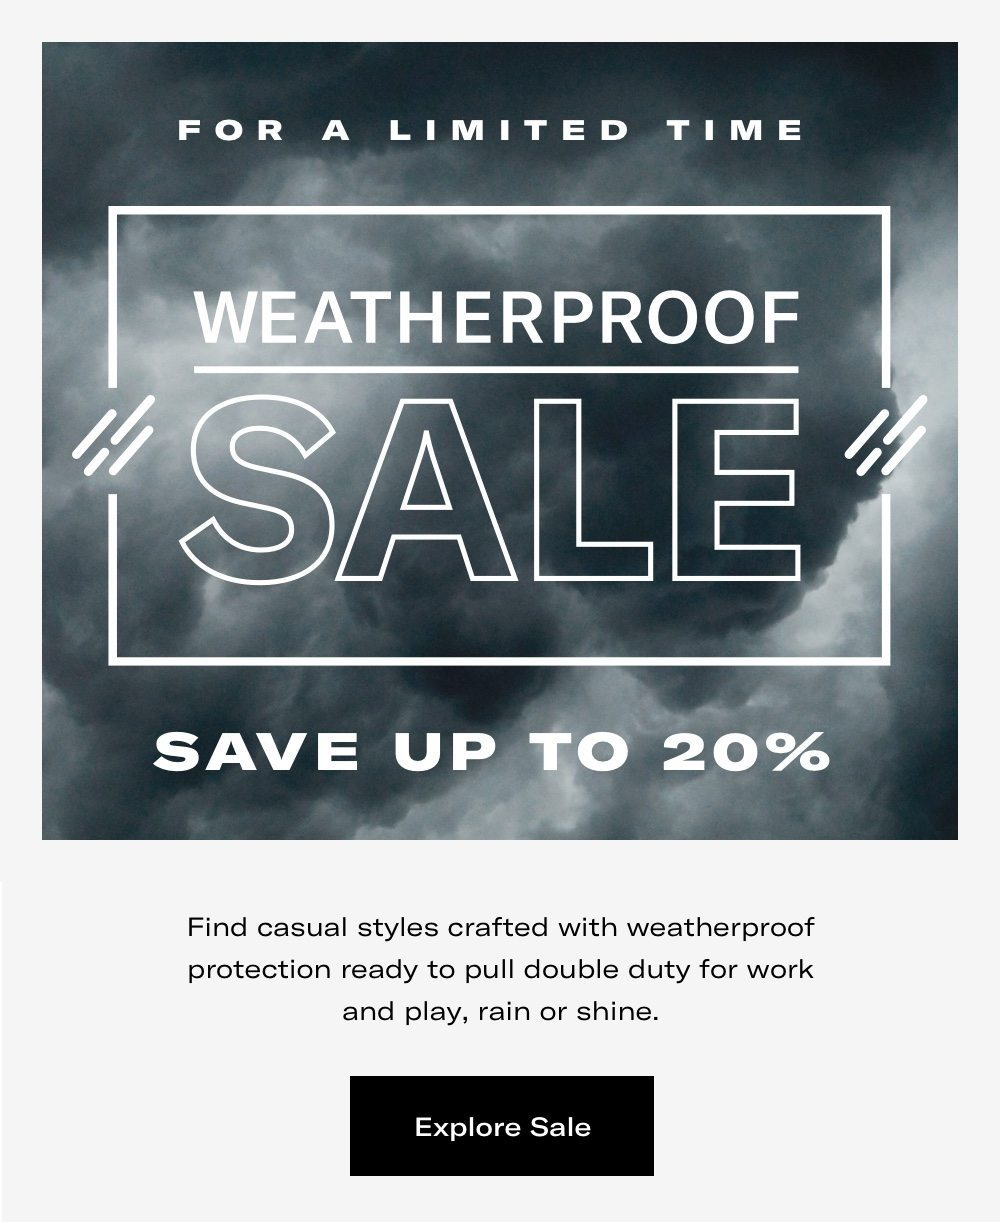 For a Limited Time - Weatherproof Sale - Save Up To 20%